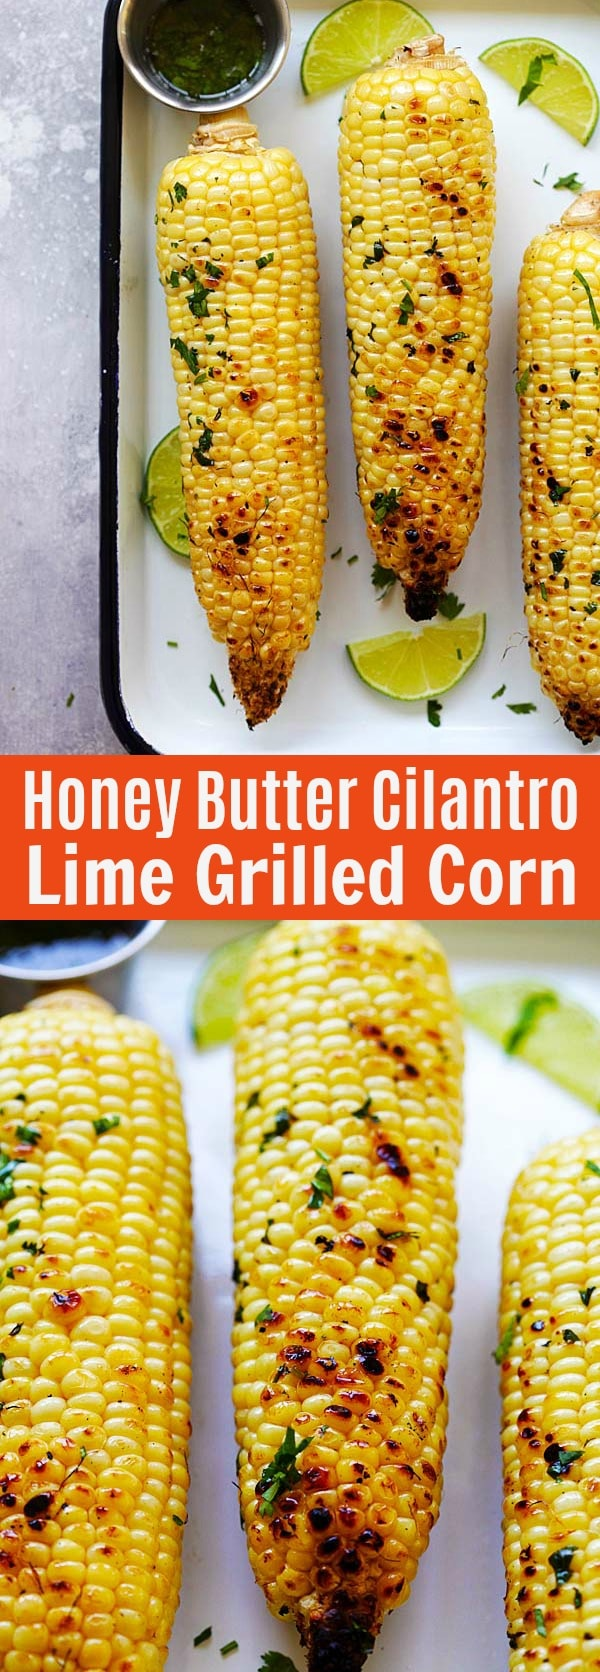 Honey Butter Cilantro Lime Grilled Corn - the best buttery grilled corn recipe with honey, cilantro and lime juice. Perfect balance of flavors | rasamalaysia.com